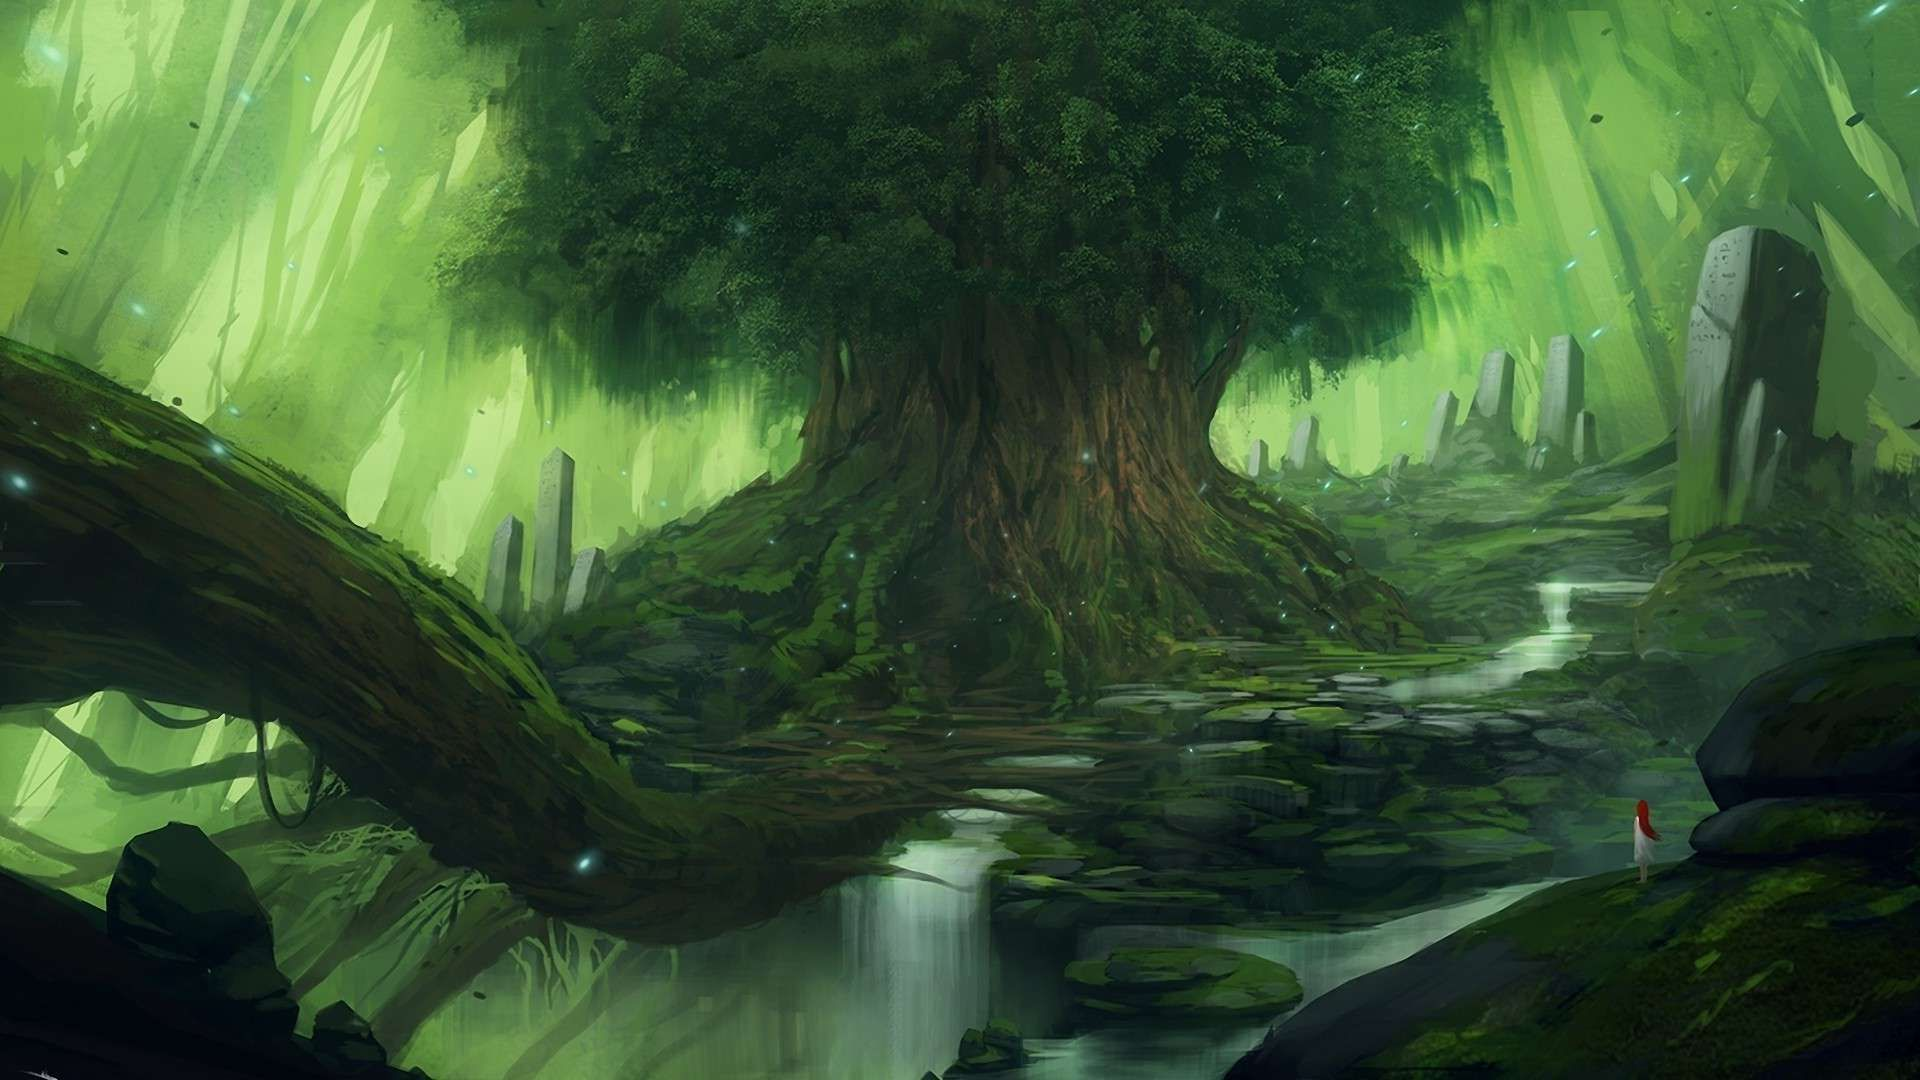 Fantasy Forest Wallpaper Images Tdh4b Wallove Fantasy Landscape Fantasy Art Landscapes Fantasy Tree